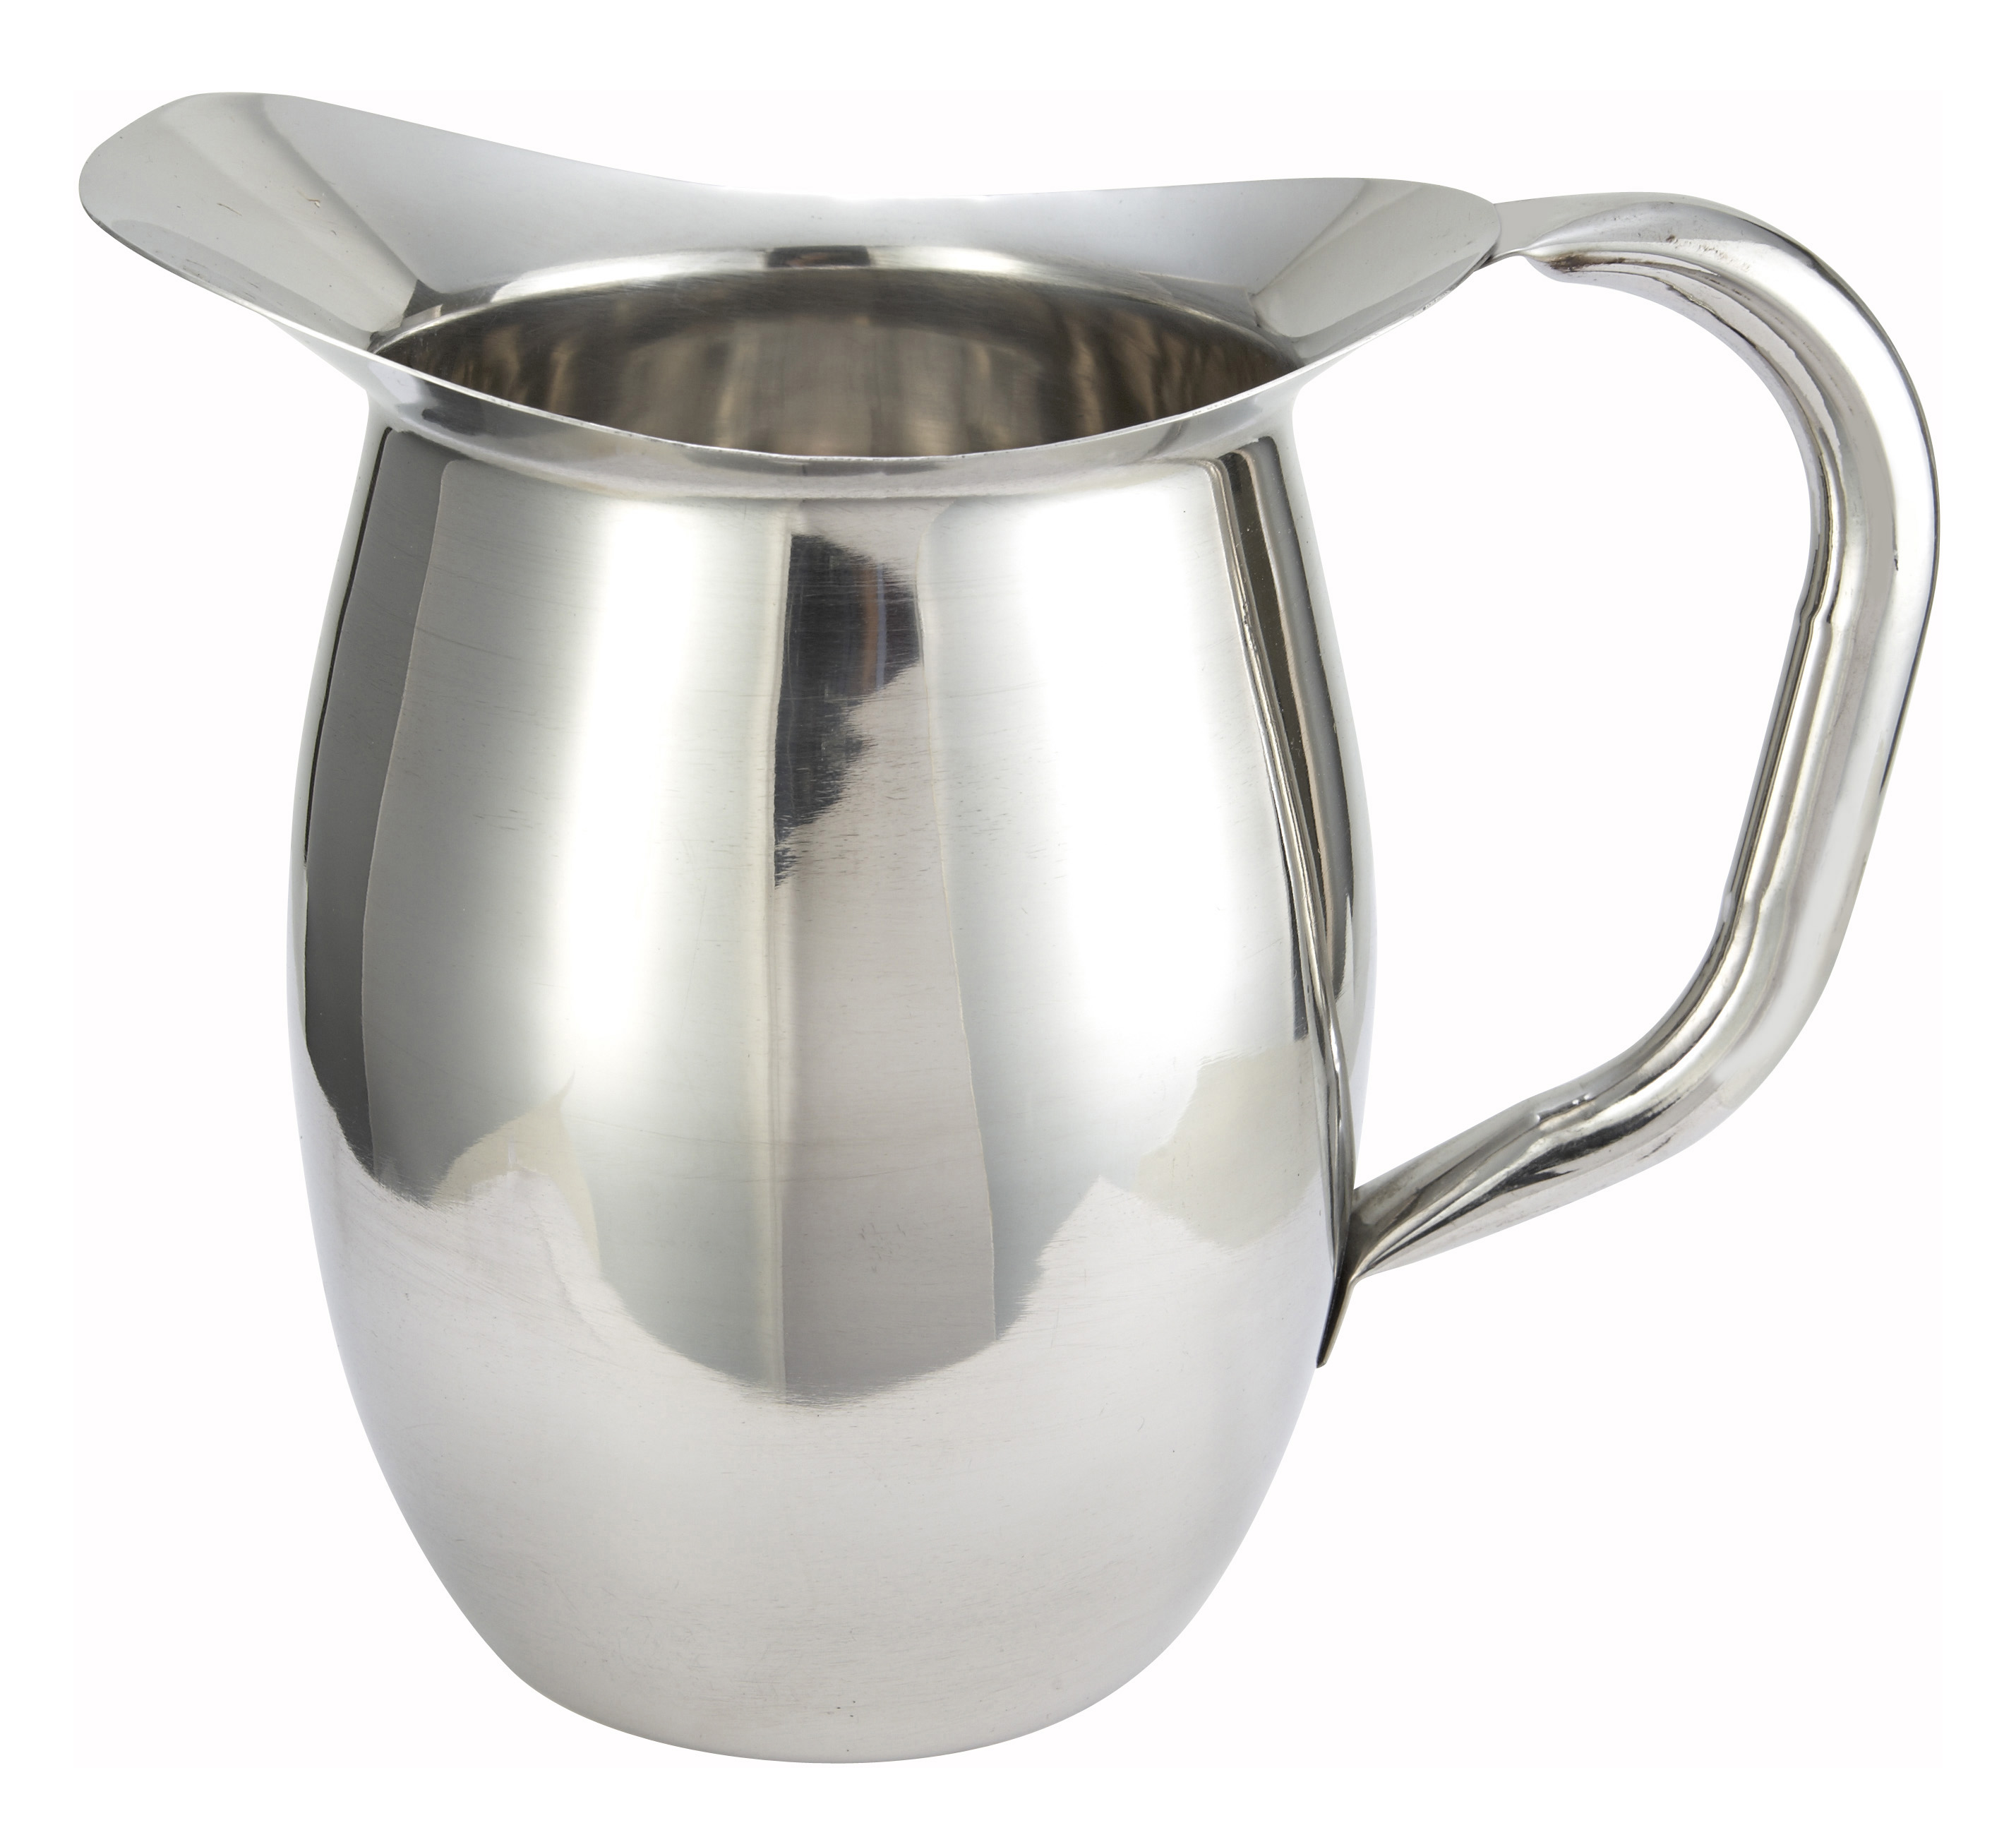 Winco WPB-3 pitchers-stainless steel